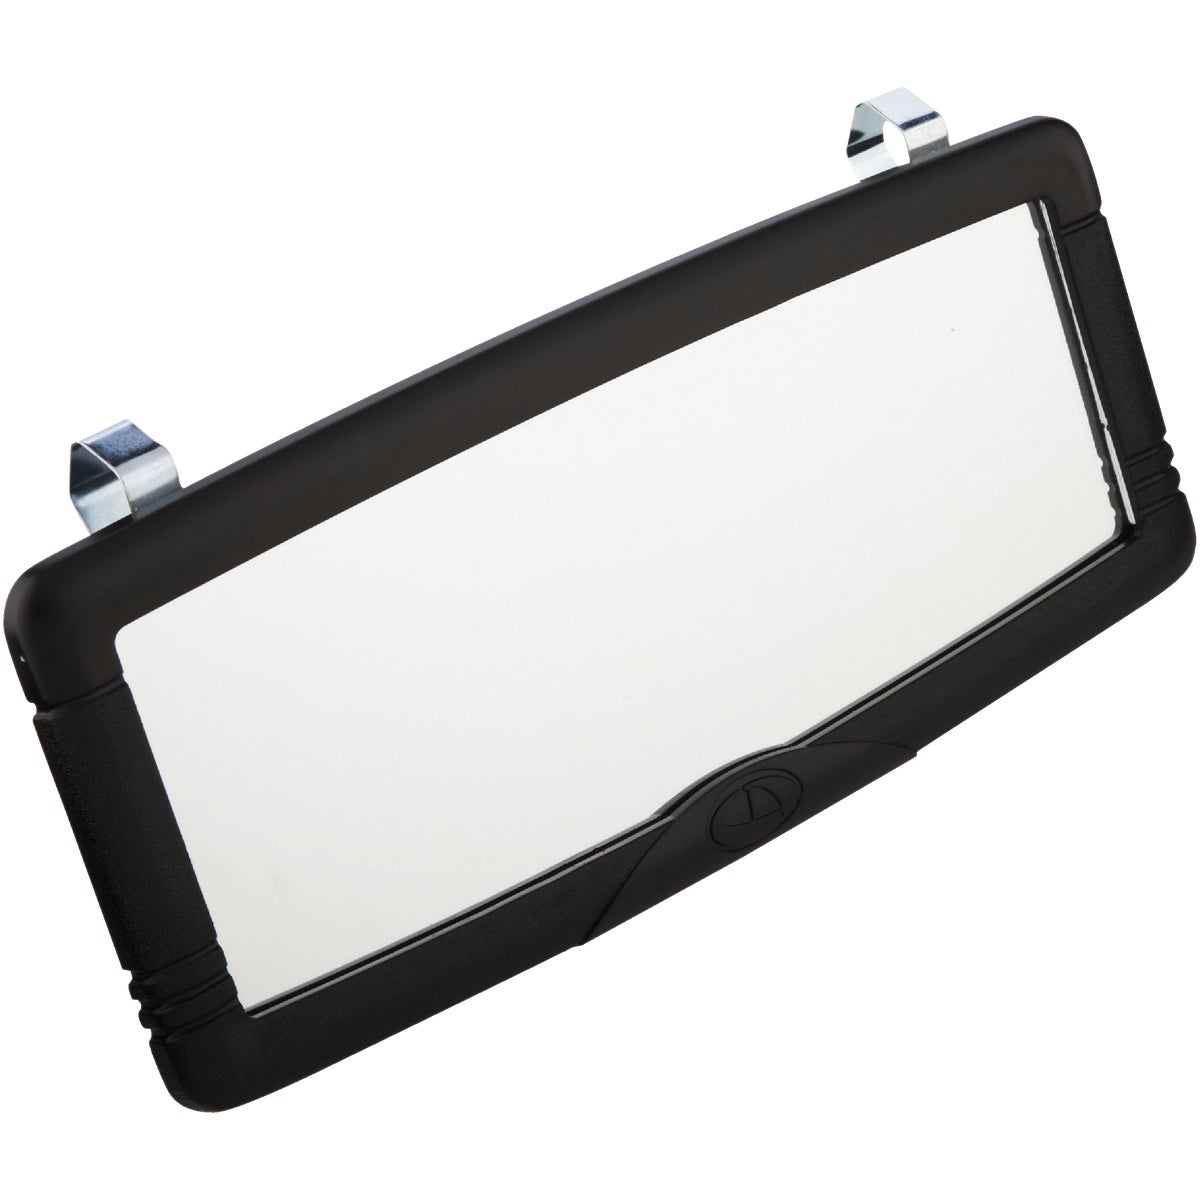 DELUXE VISOR MIRROR - 70003 by Custom Accessories